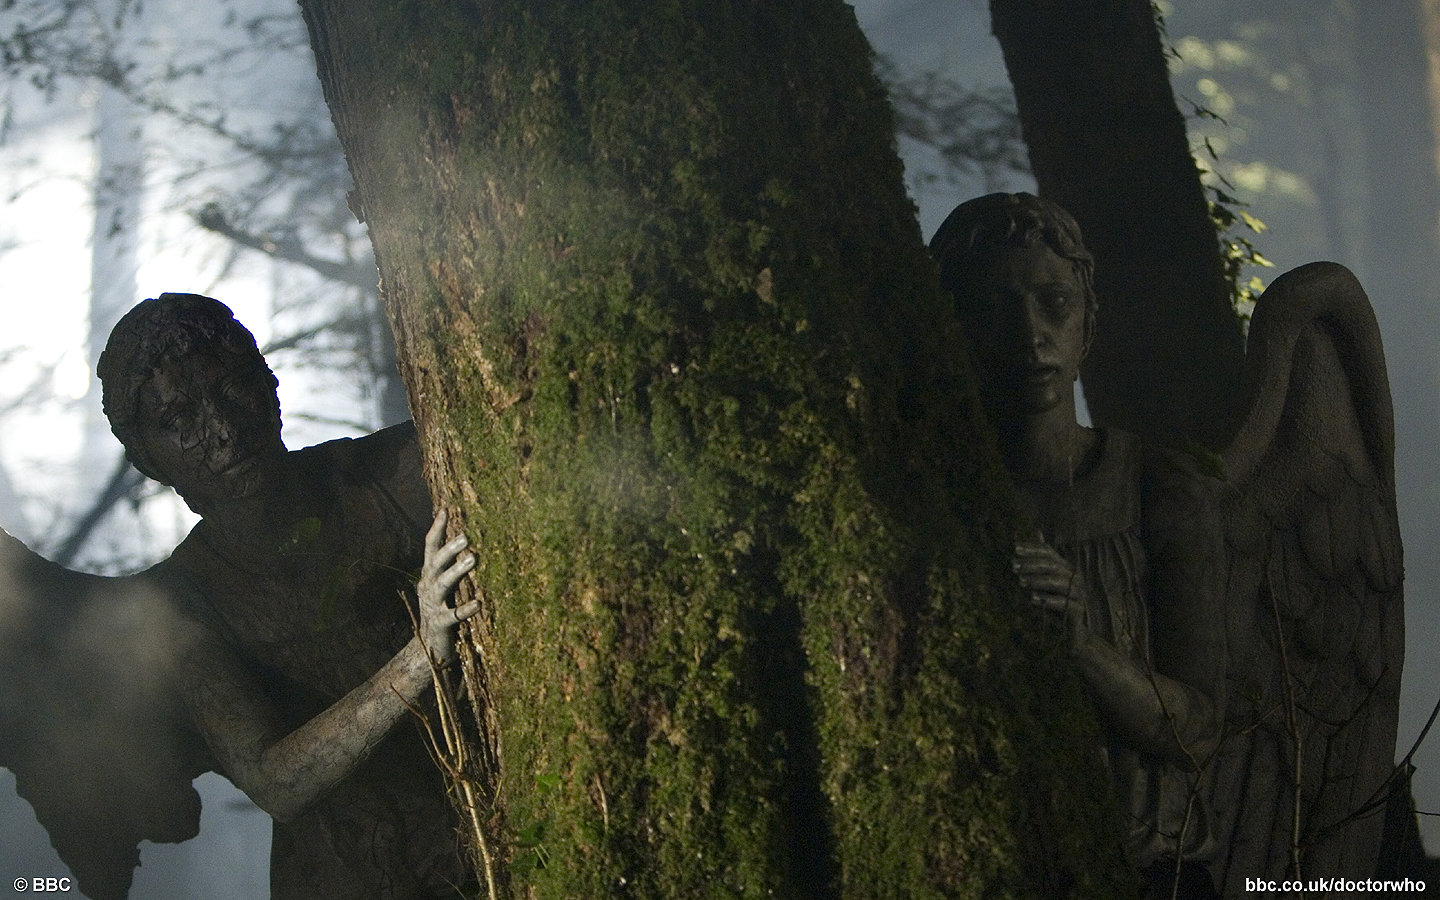 weeping angels wallpaper gif viewing gallery